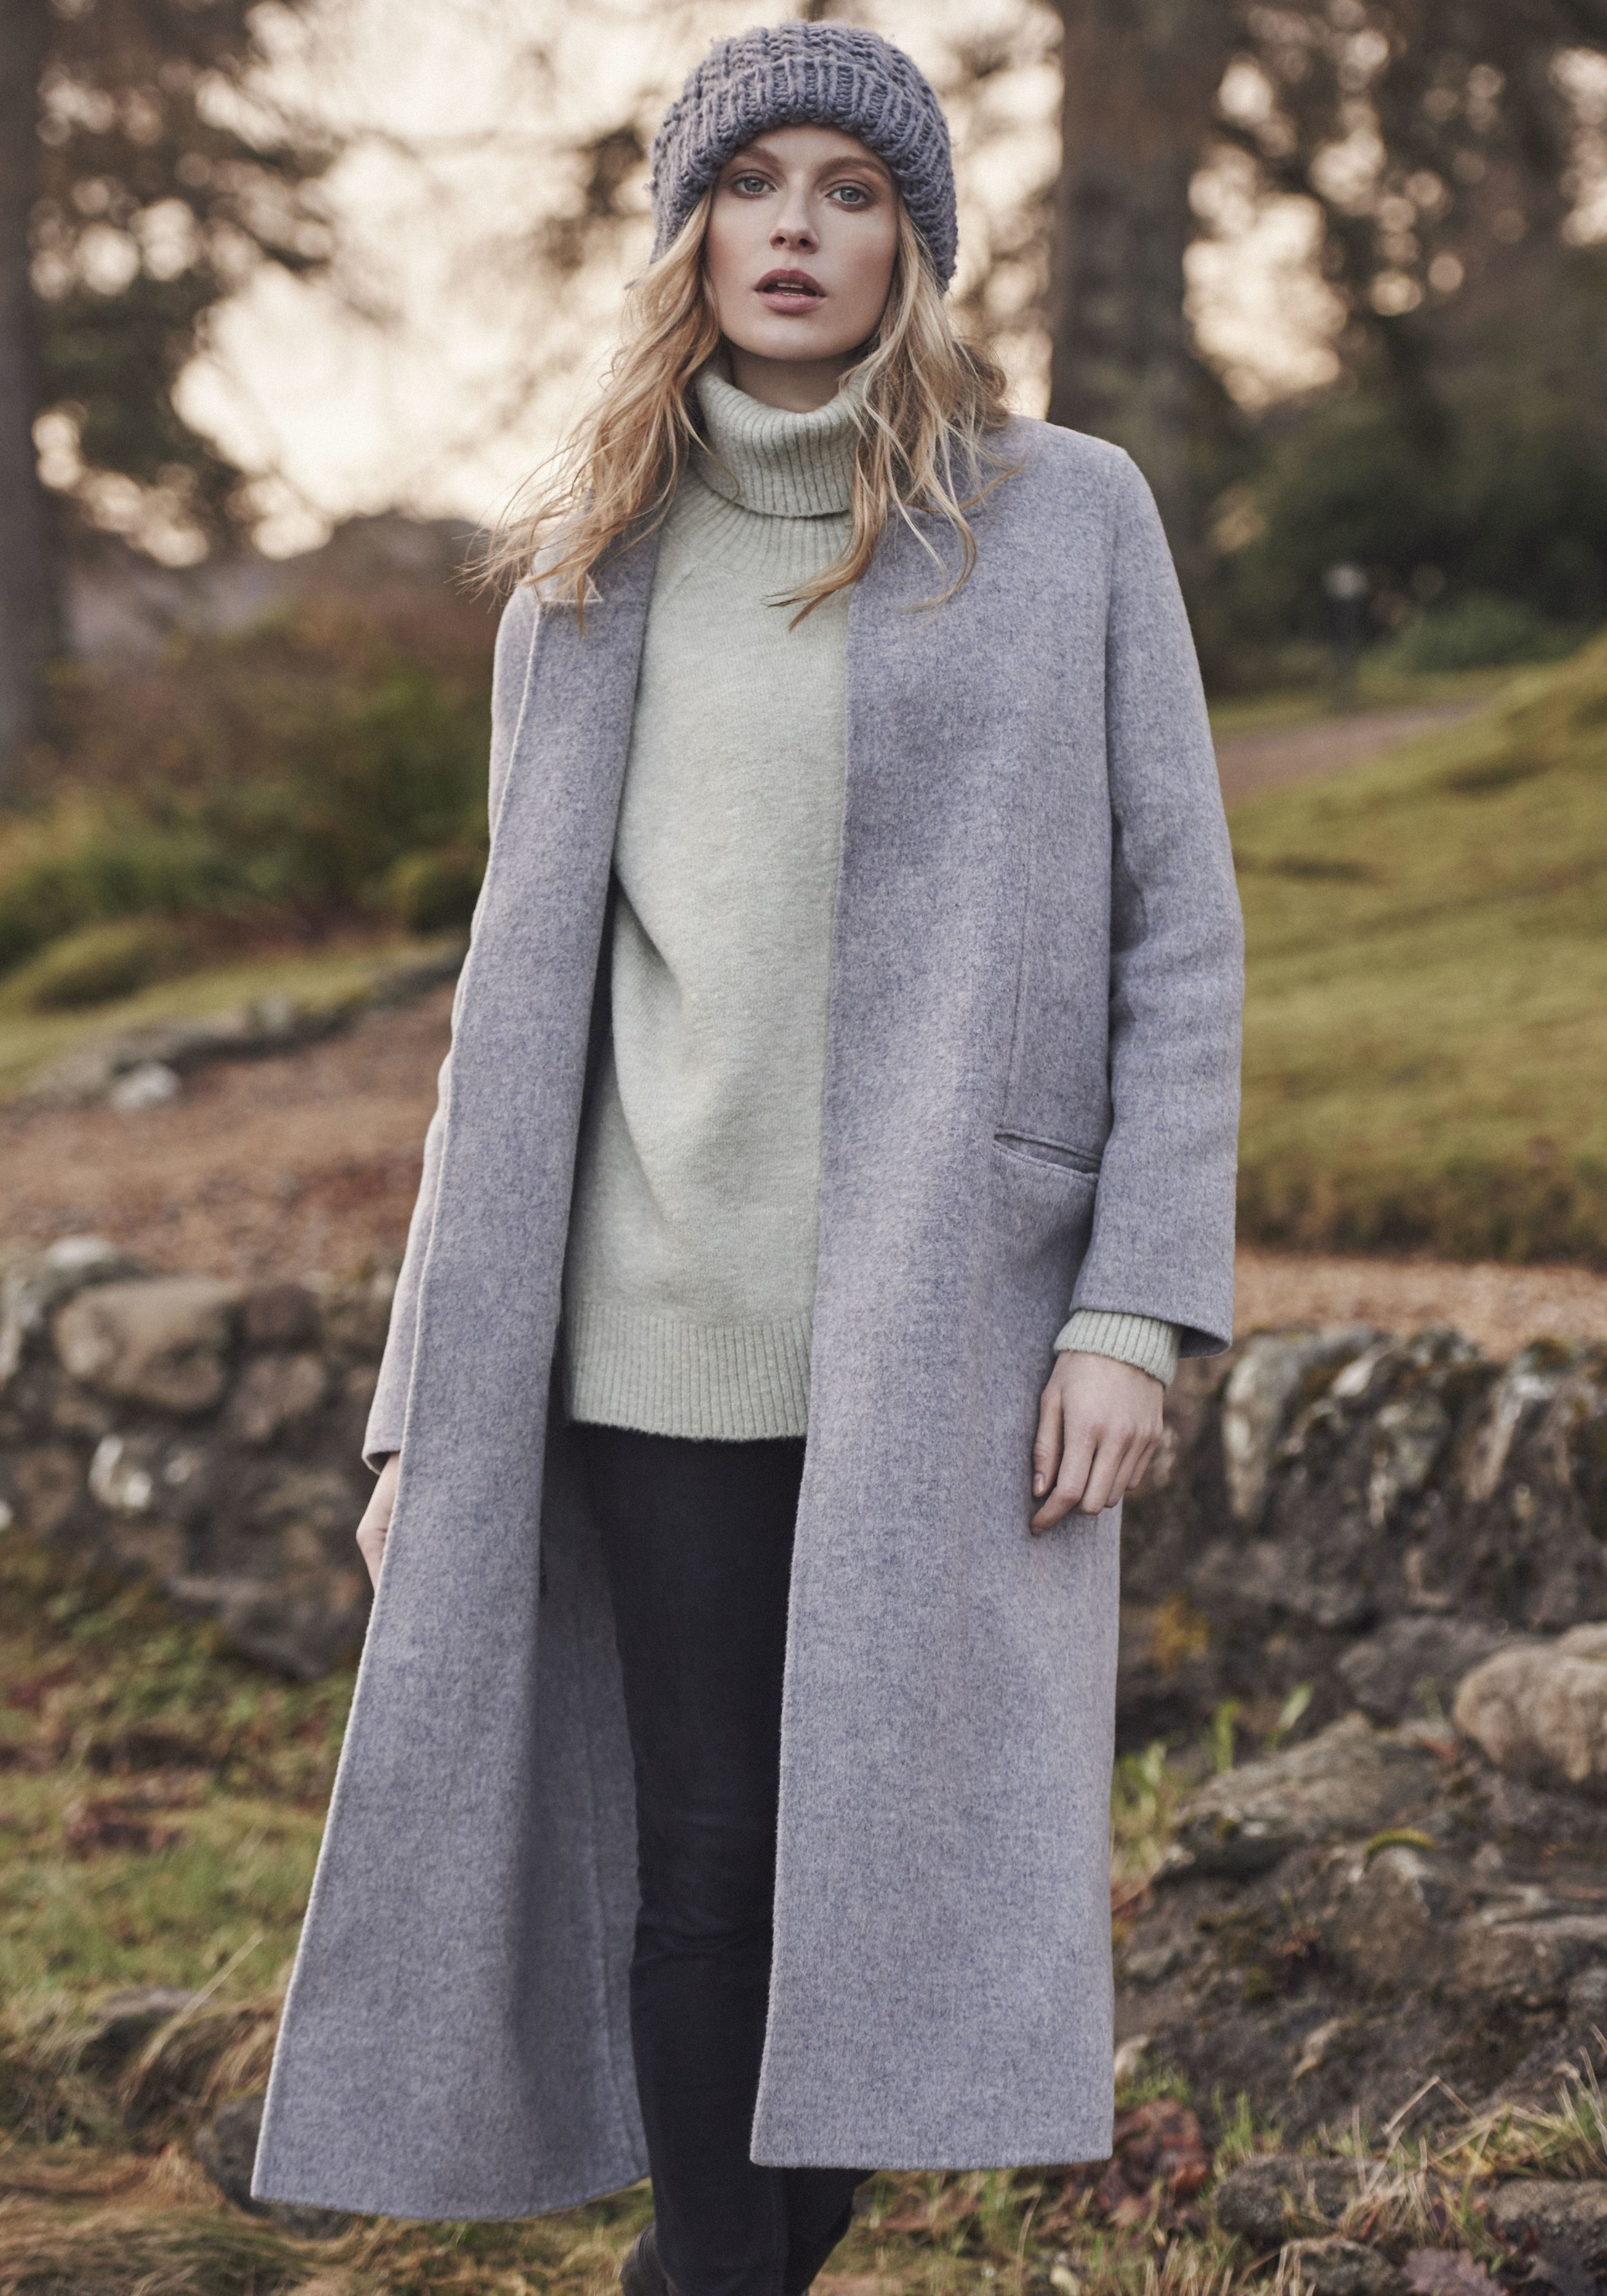 This is one of my fav images from the shoot wearing   Duster coat, £85 from Topshop ,   Wool jumper, £45 from M&S ,   Jeans, £40 from Asos and  Oversized beanie, £17, Accessorize